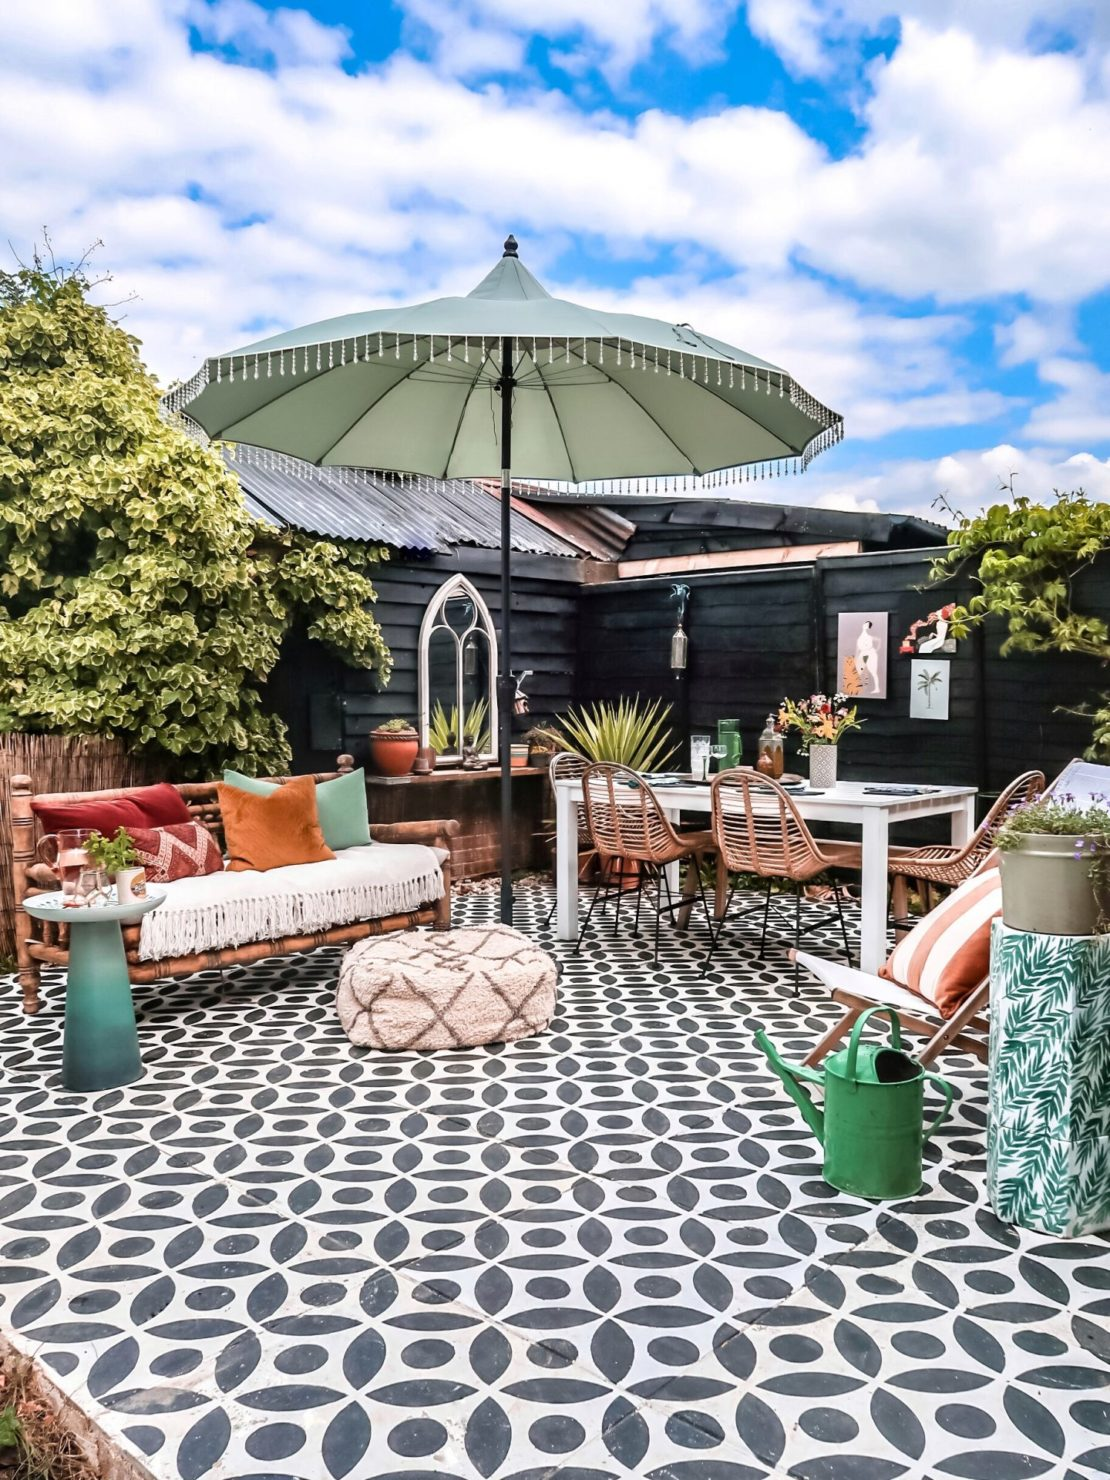 a concrete patio with a black and white pattern painted across it